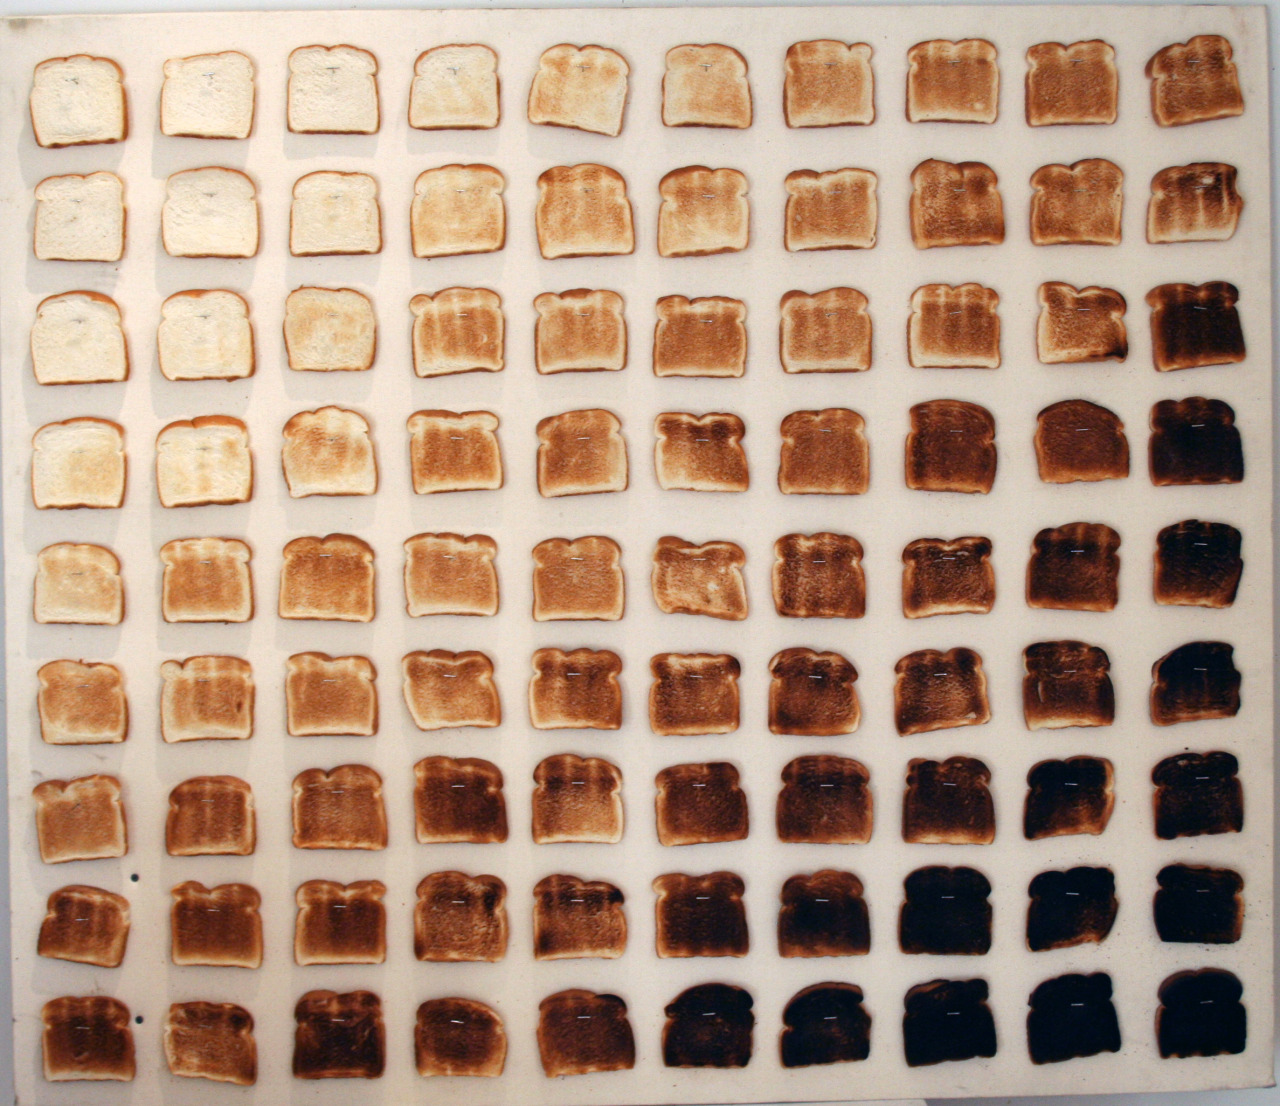 evoleur:  90 shades of bread